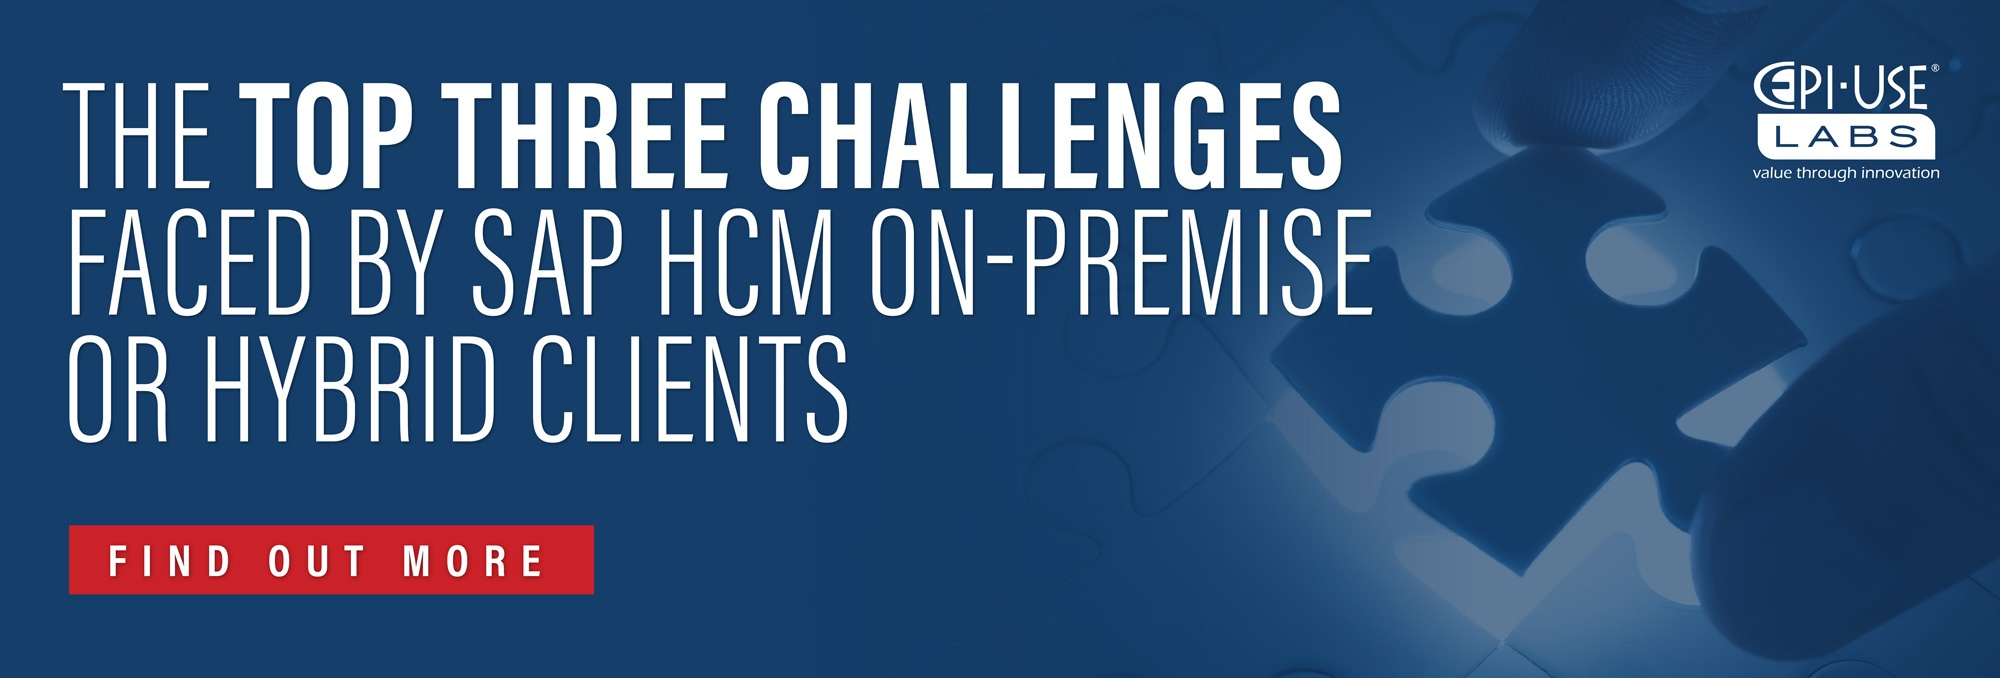 Top three challenges faced by SAP HCM clients